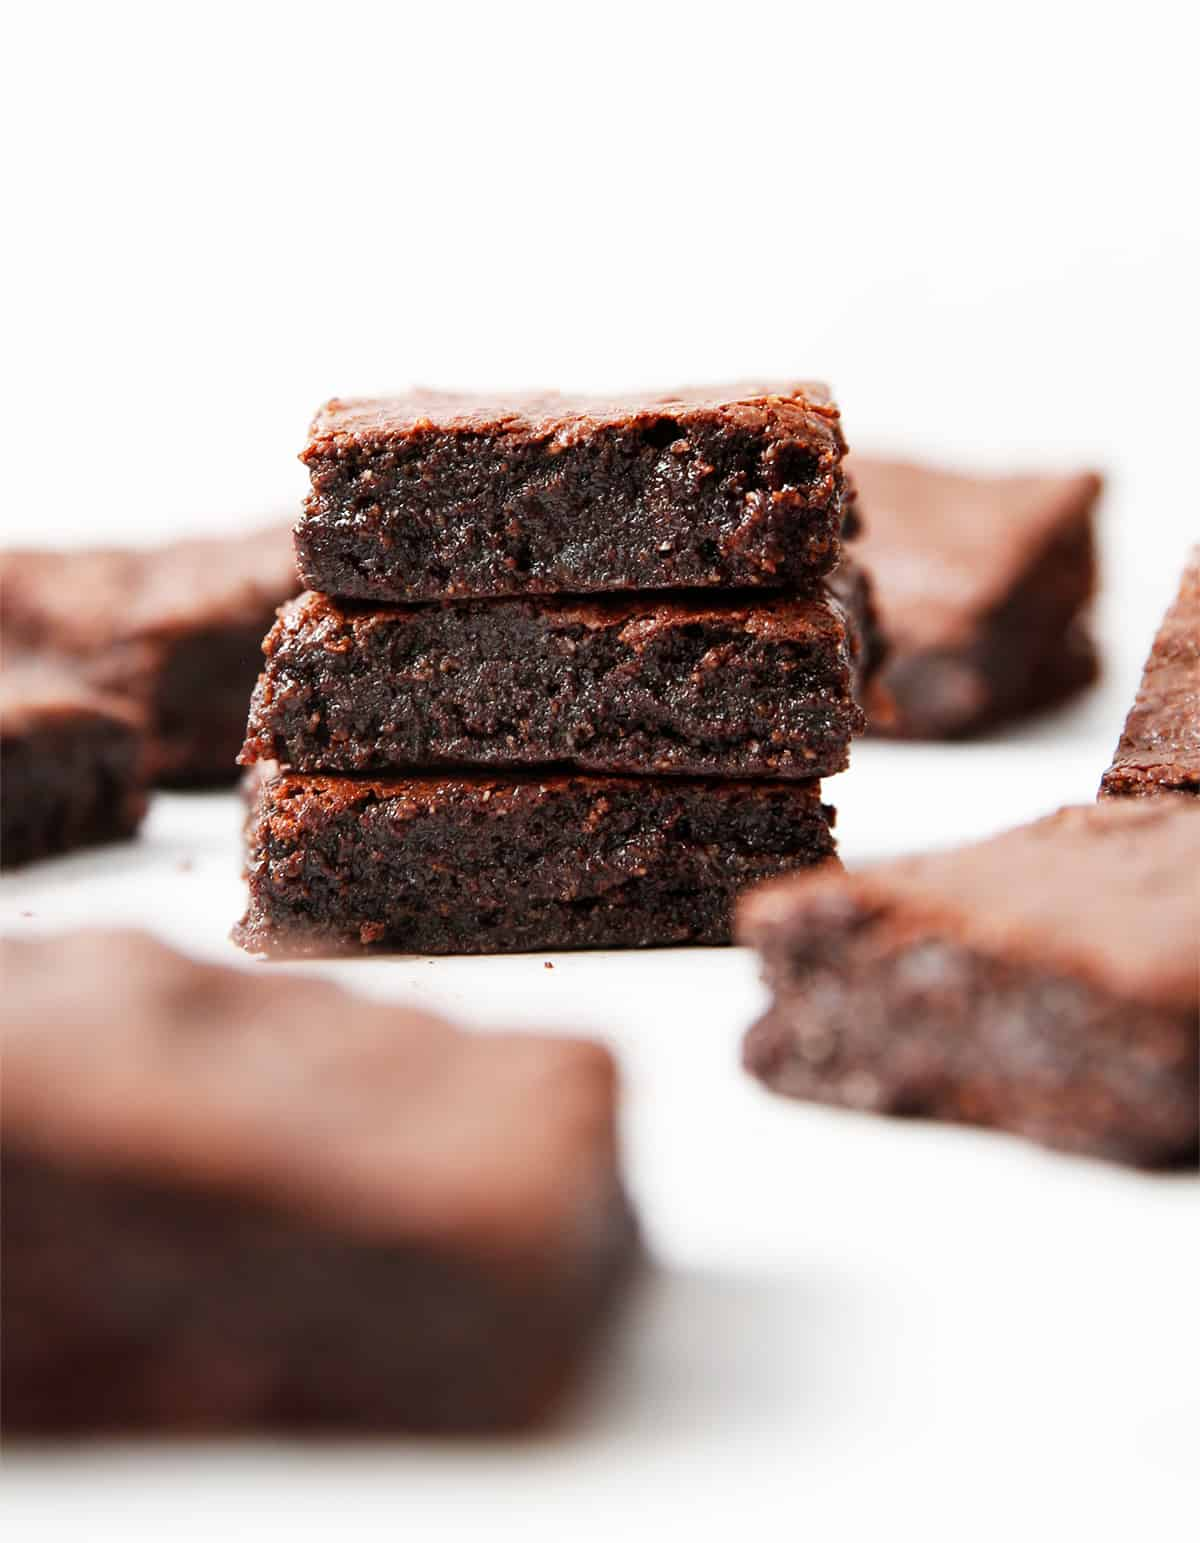 Super fudgy paleo brownies stacked up